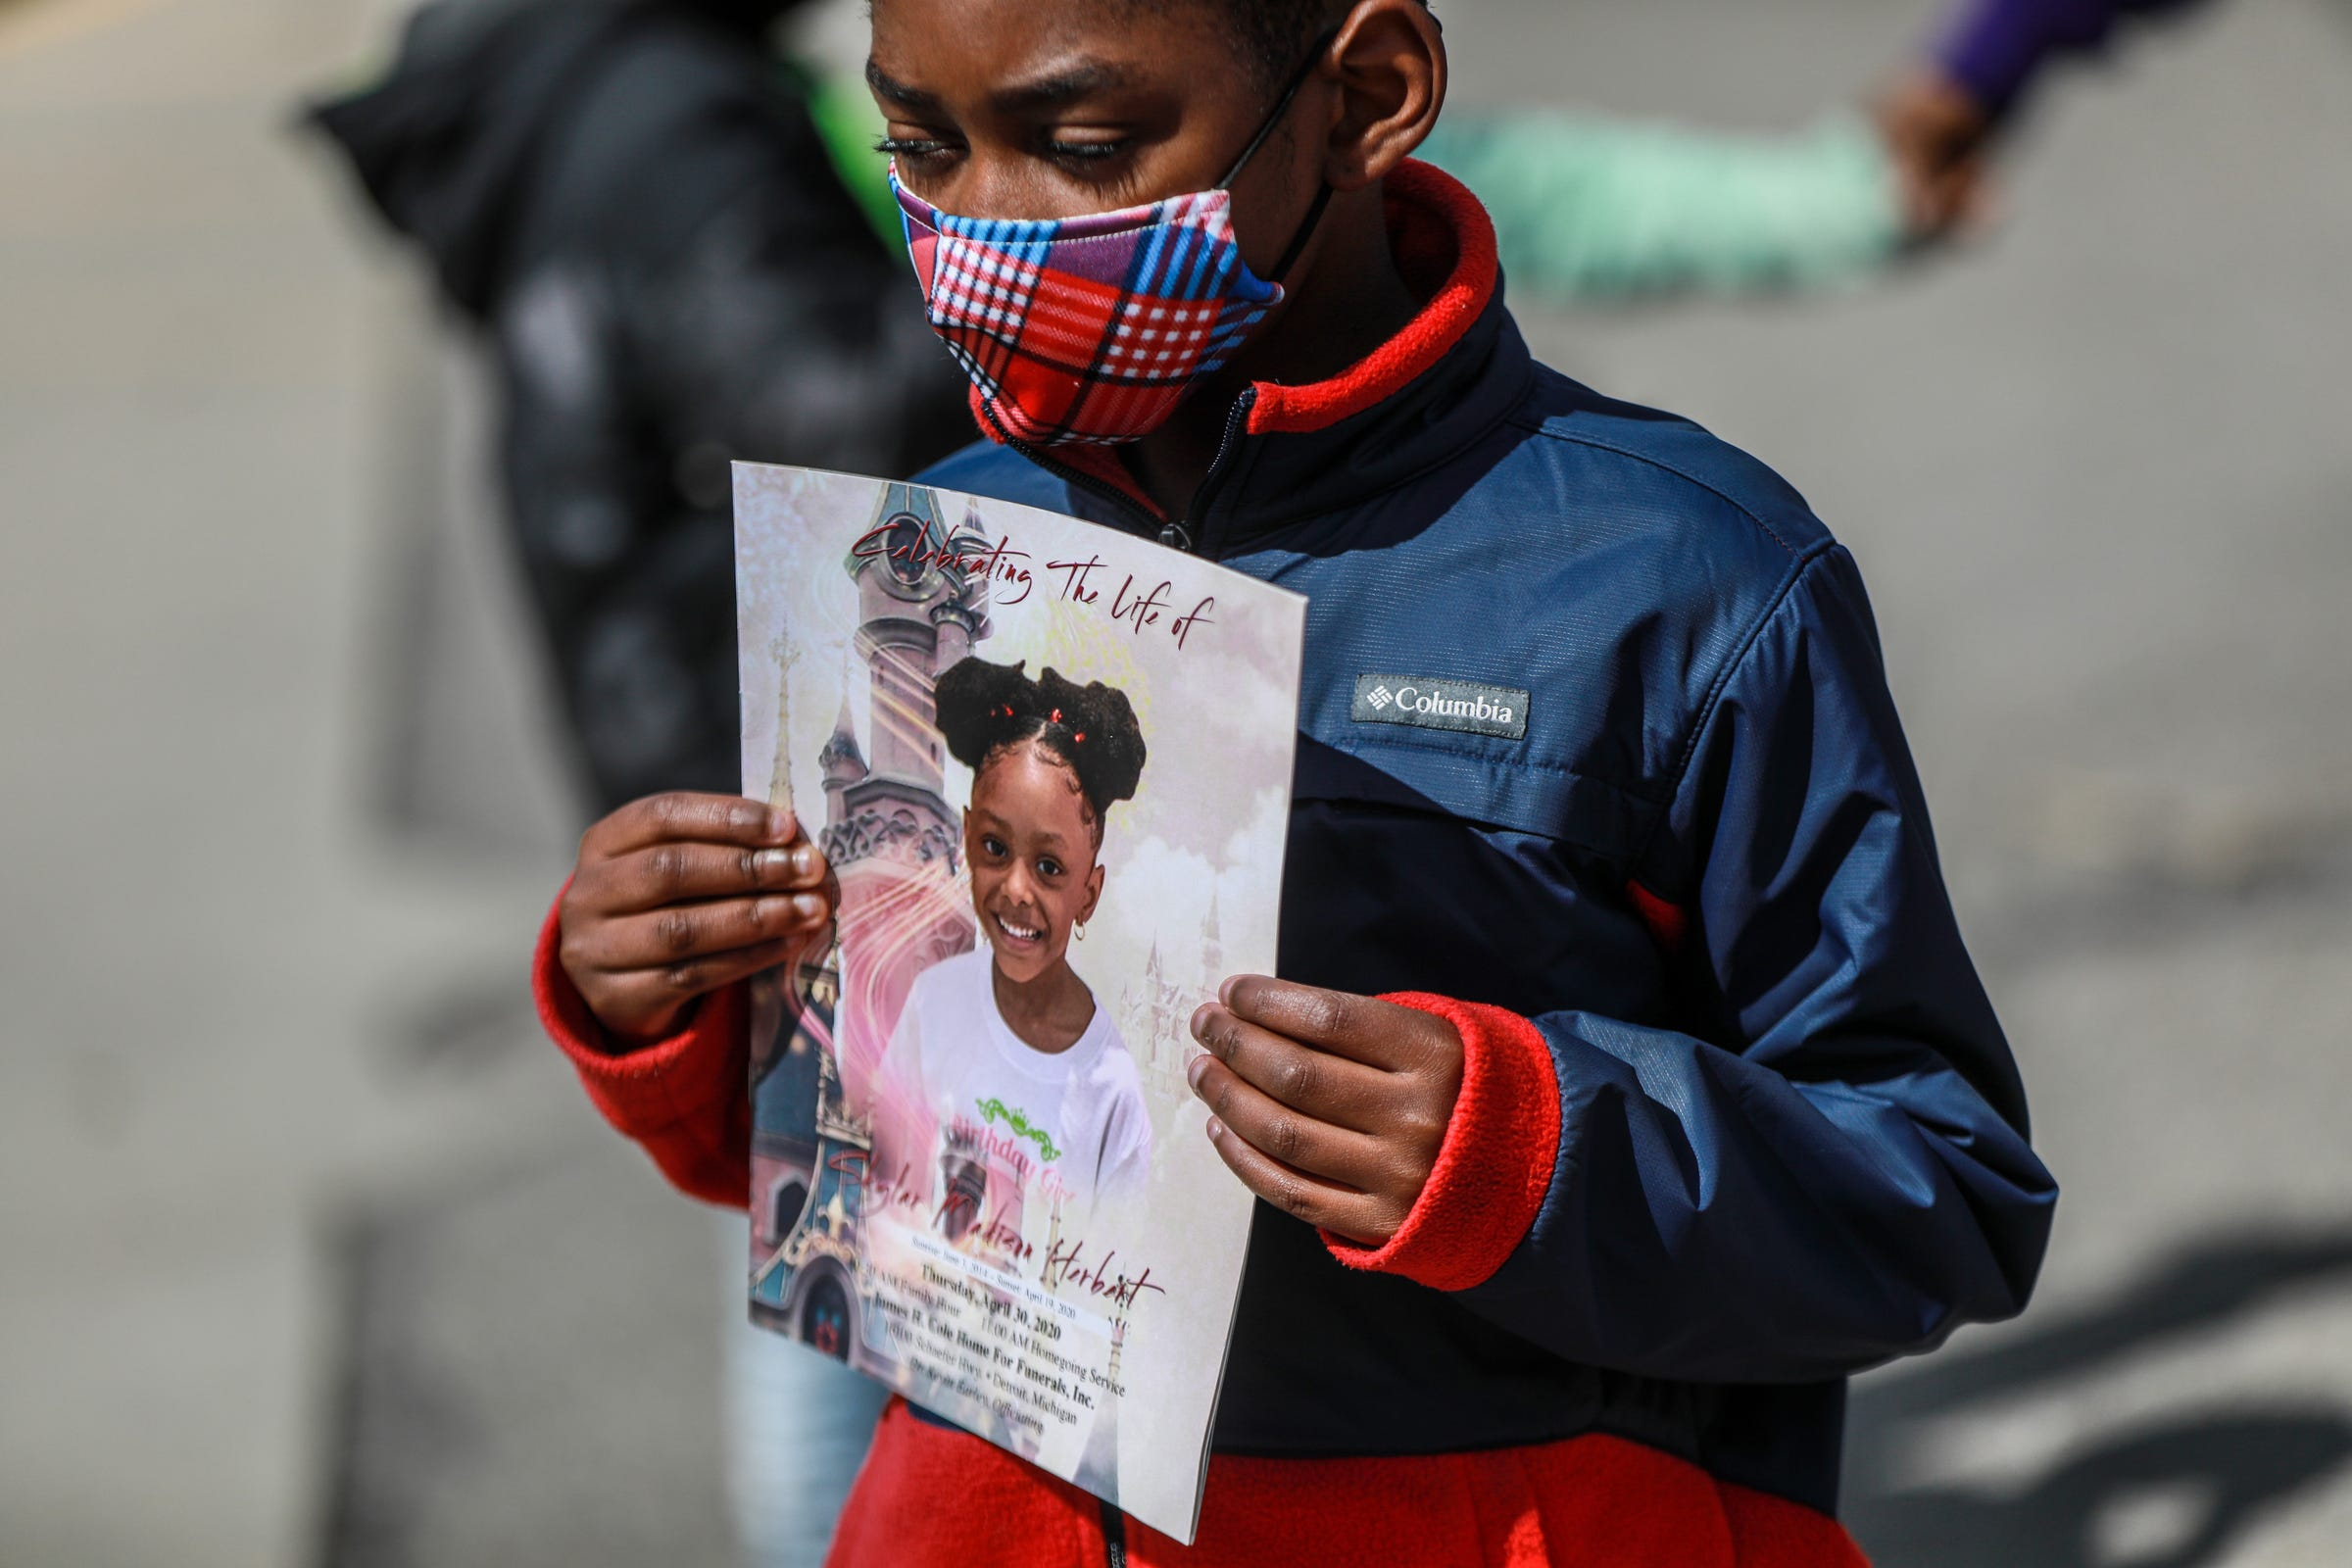 James Foster, 7, of Detroit holds the memorial service program for his classmate, Skylar Herbert, who was initially Michigan's youngest COVID-19 victim, at a memoriam for Skylar at their elementary school,  University Prep Academy - Mark Murray Campus, on May 8, 2021. Foster quietly said Skylar was his best friend.